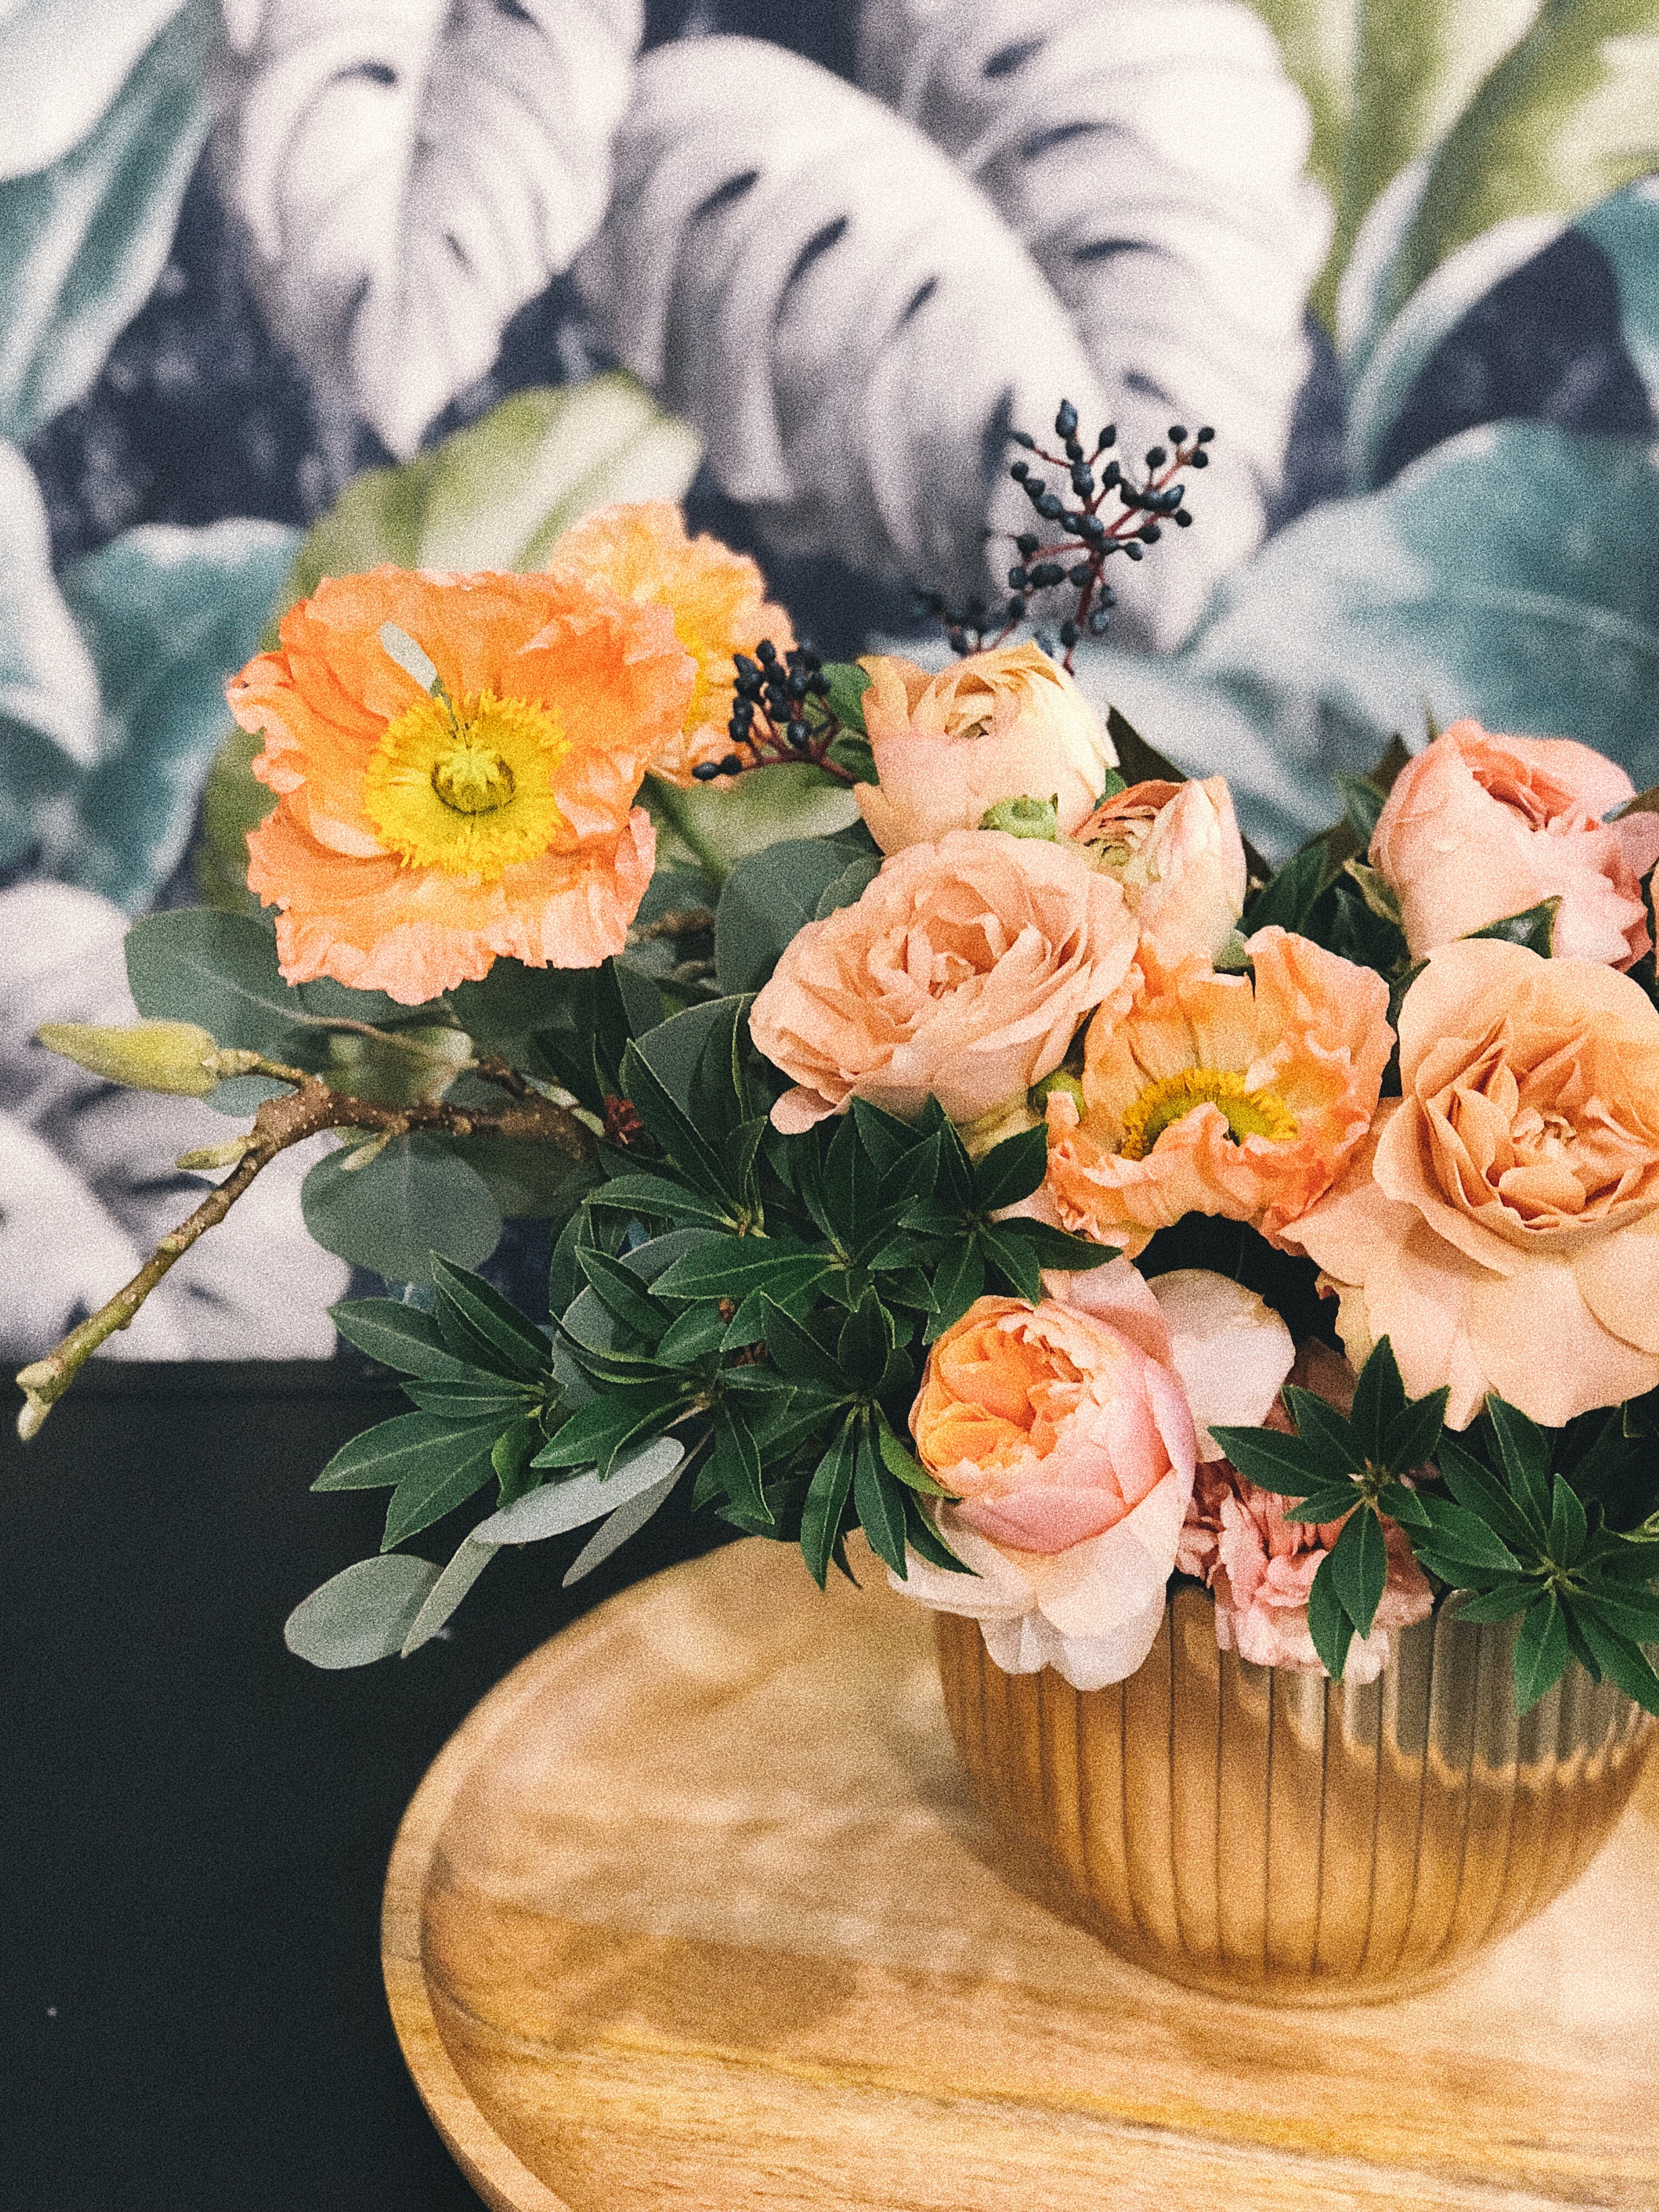 Peach Peony Flowers and Pink Poppy Flowers in Vase on Table Centerpiece, Leaves, Wedding, Vase, Table, HQ Photo